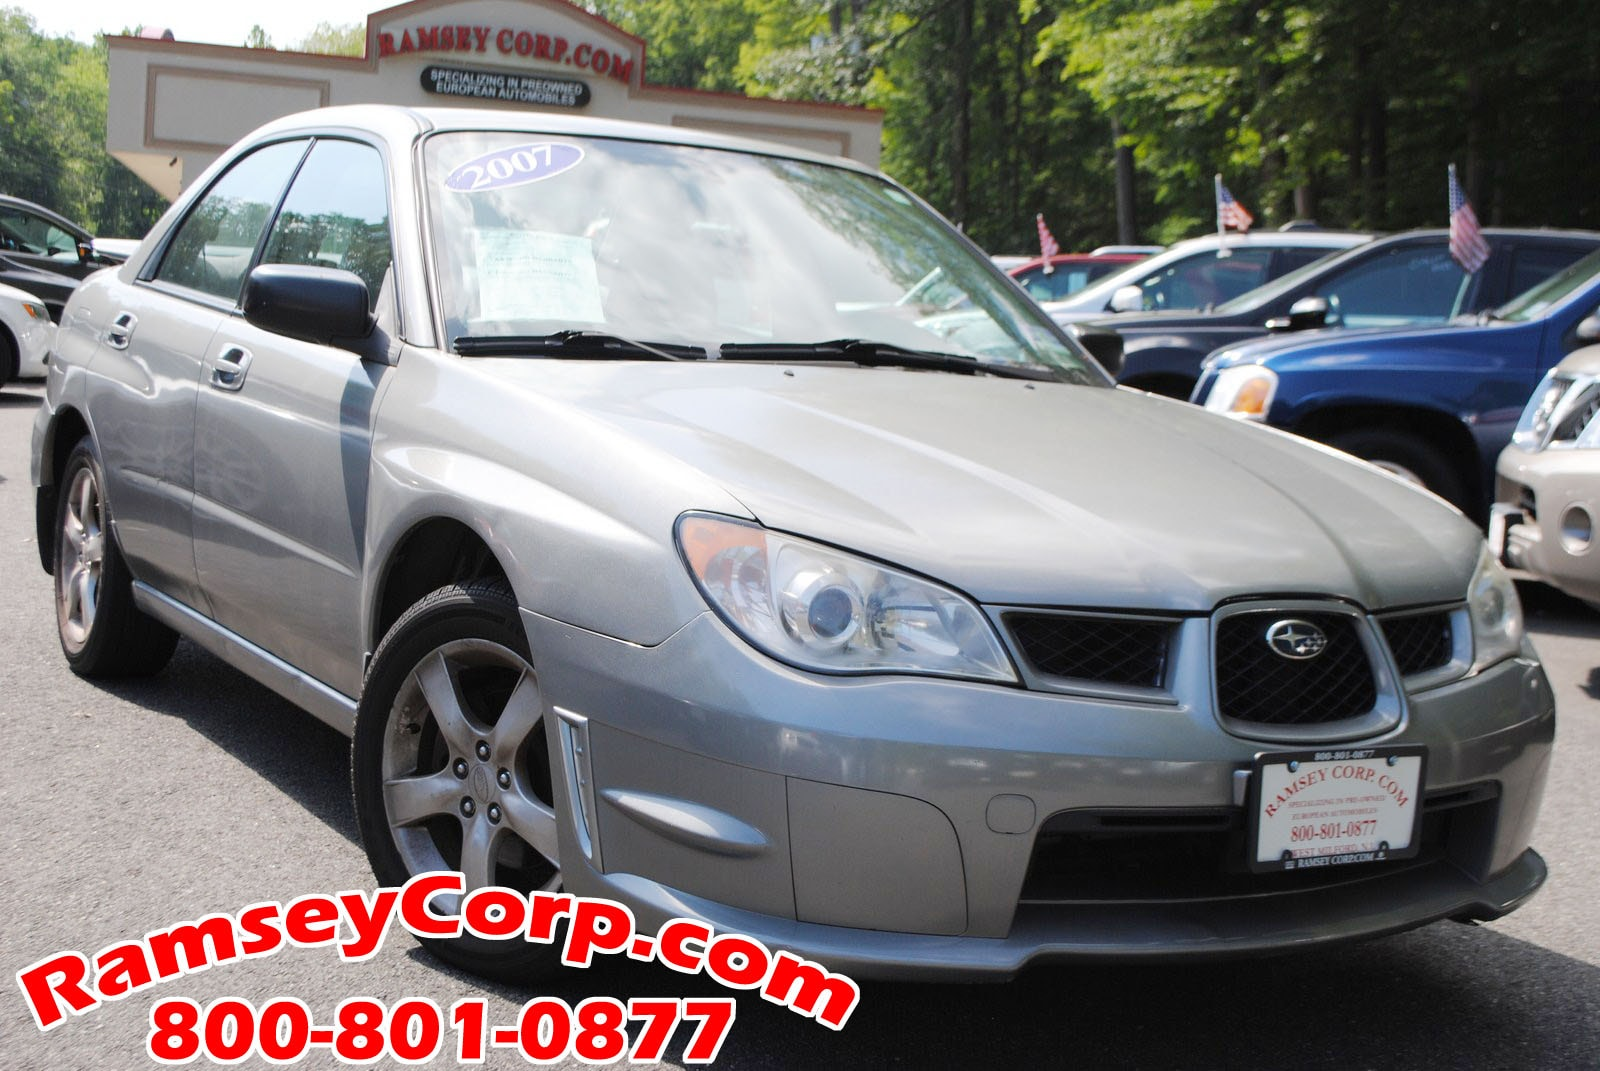 used 2007 subaru impreza for sale west milford nj. Black Bedroom Furniture Sets. Home Design Ideas